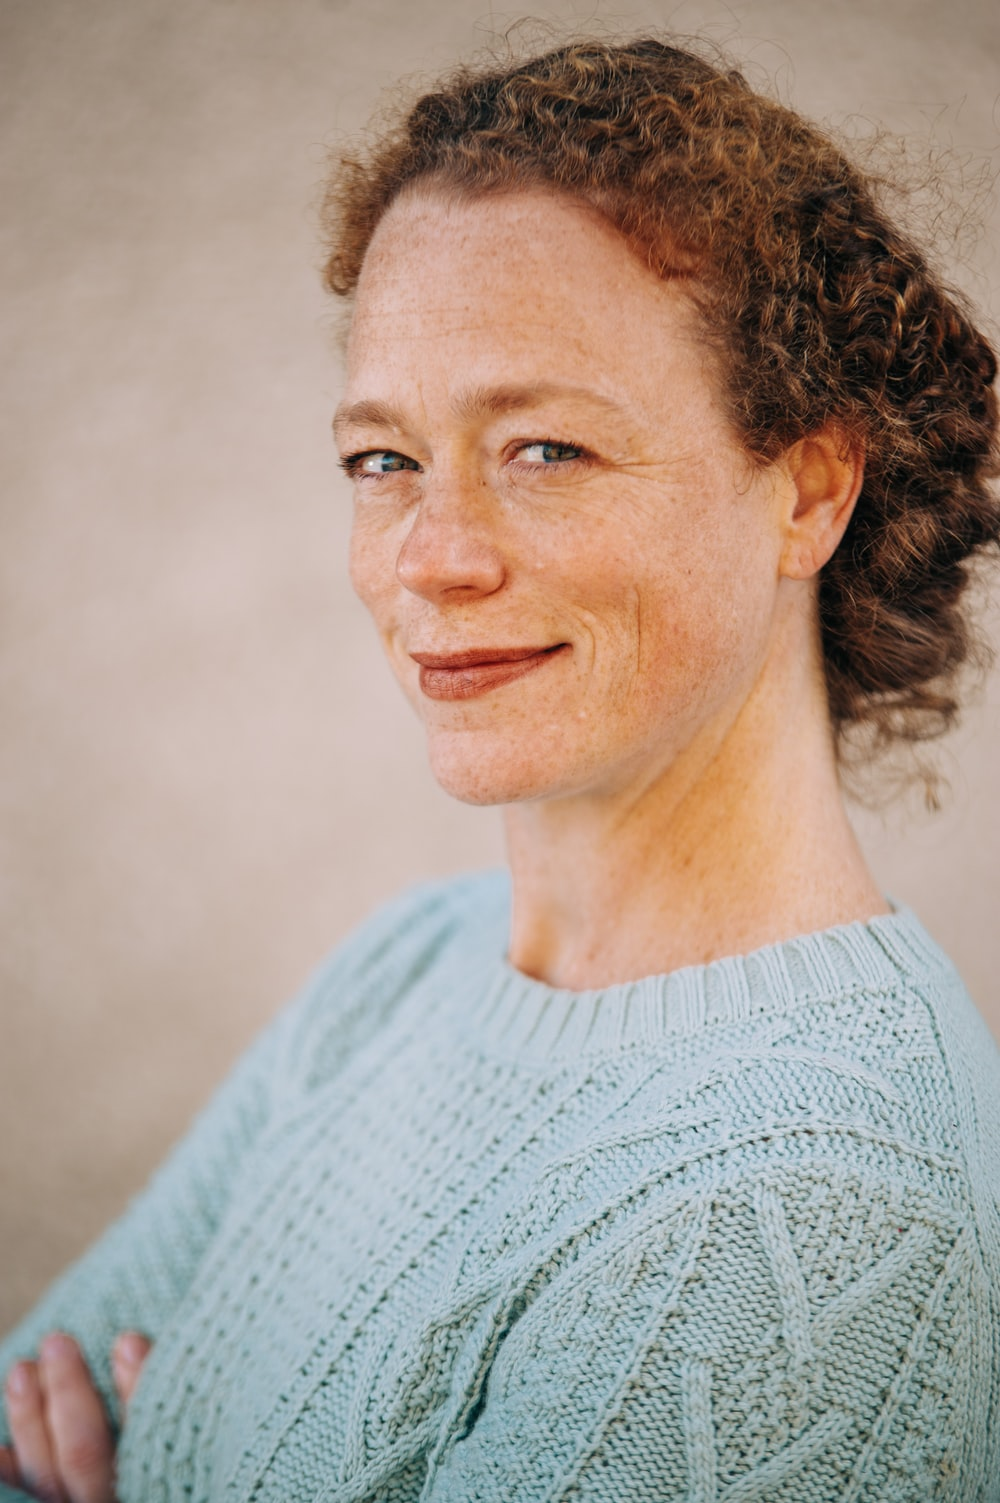 portrait photography of woman wearing teal crew-neck sweater smiling